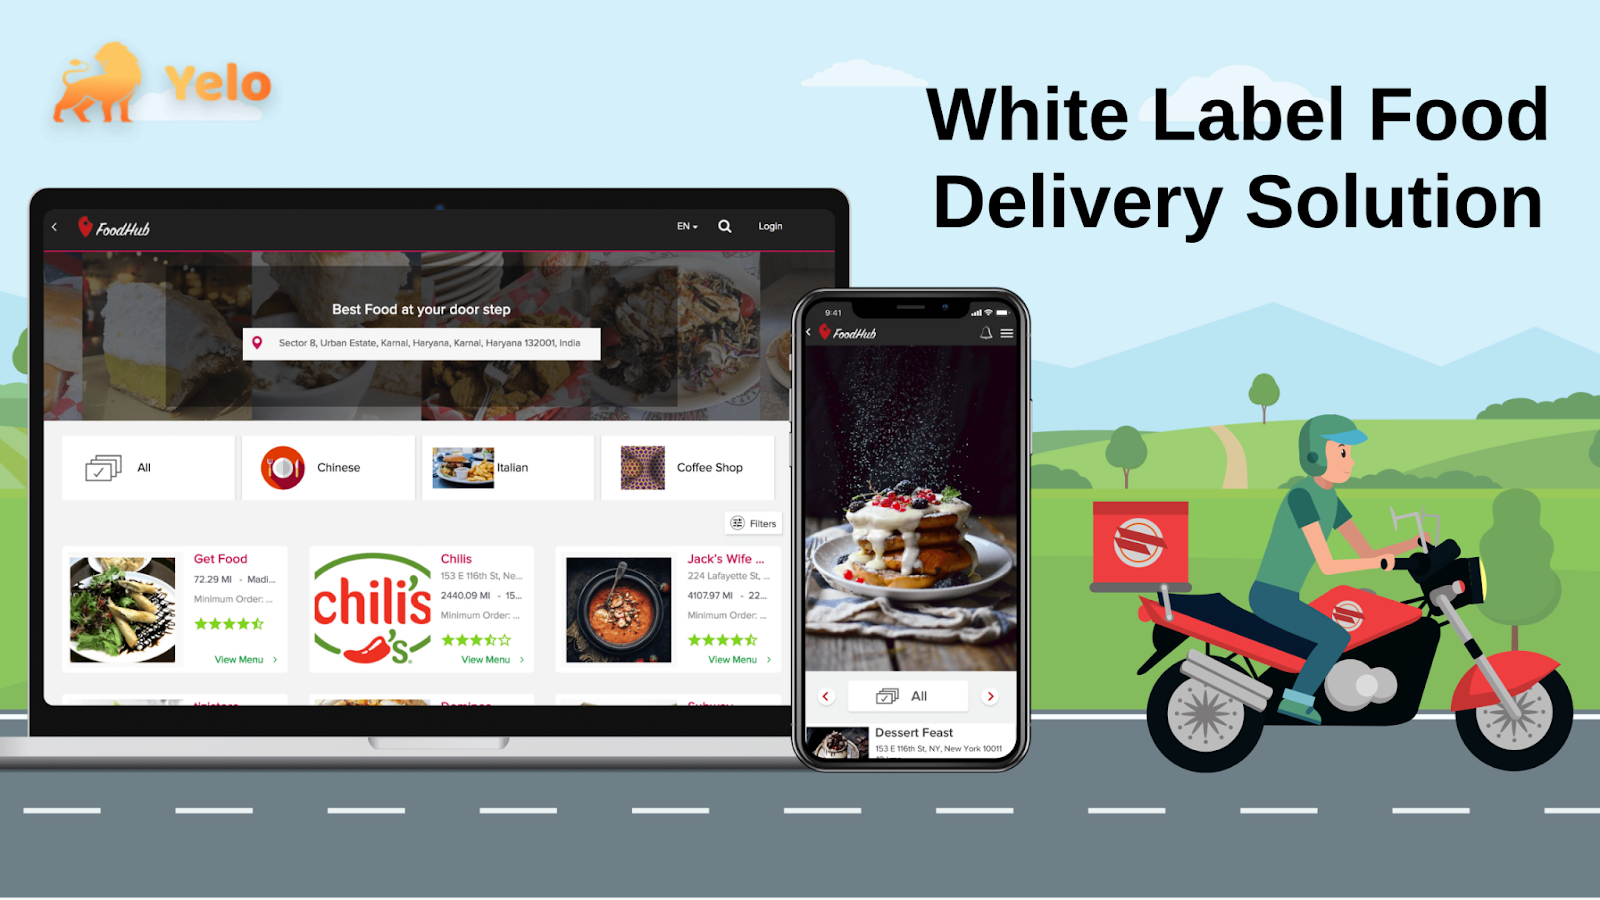 Why White Label Food Delivery Solution Is The Best? - Jungleworks